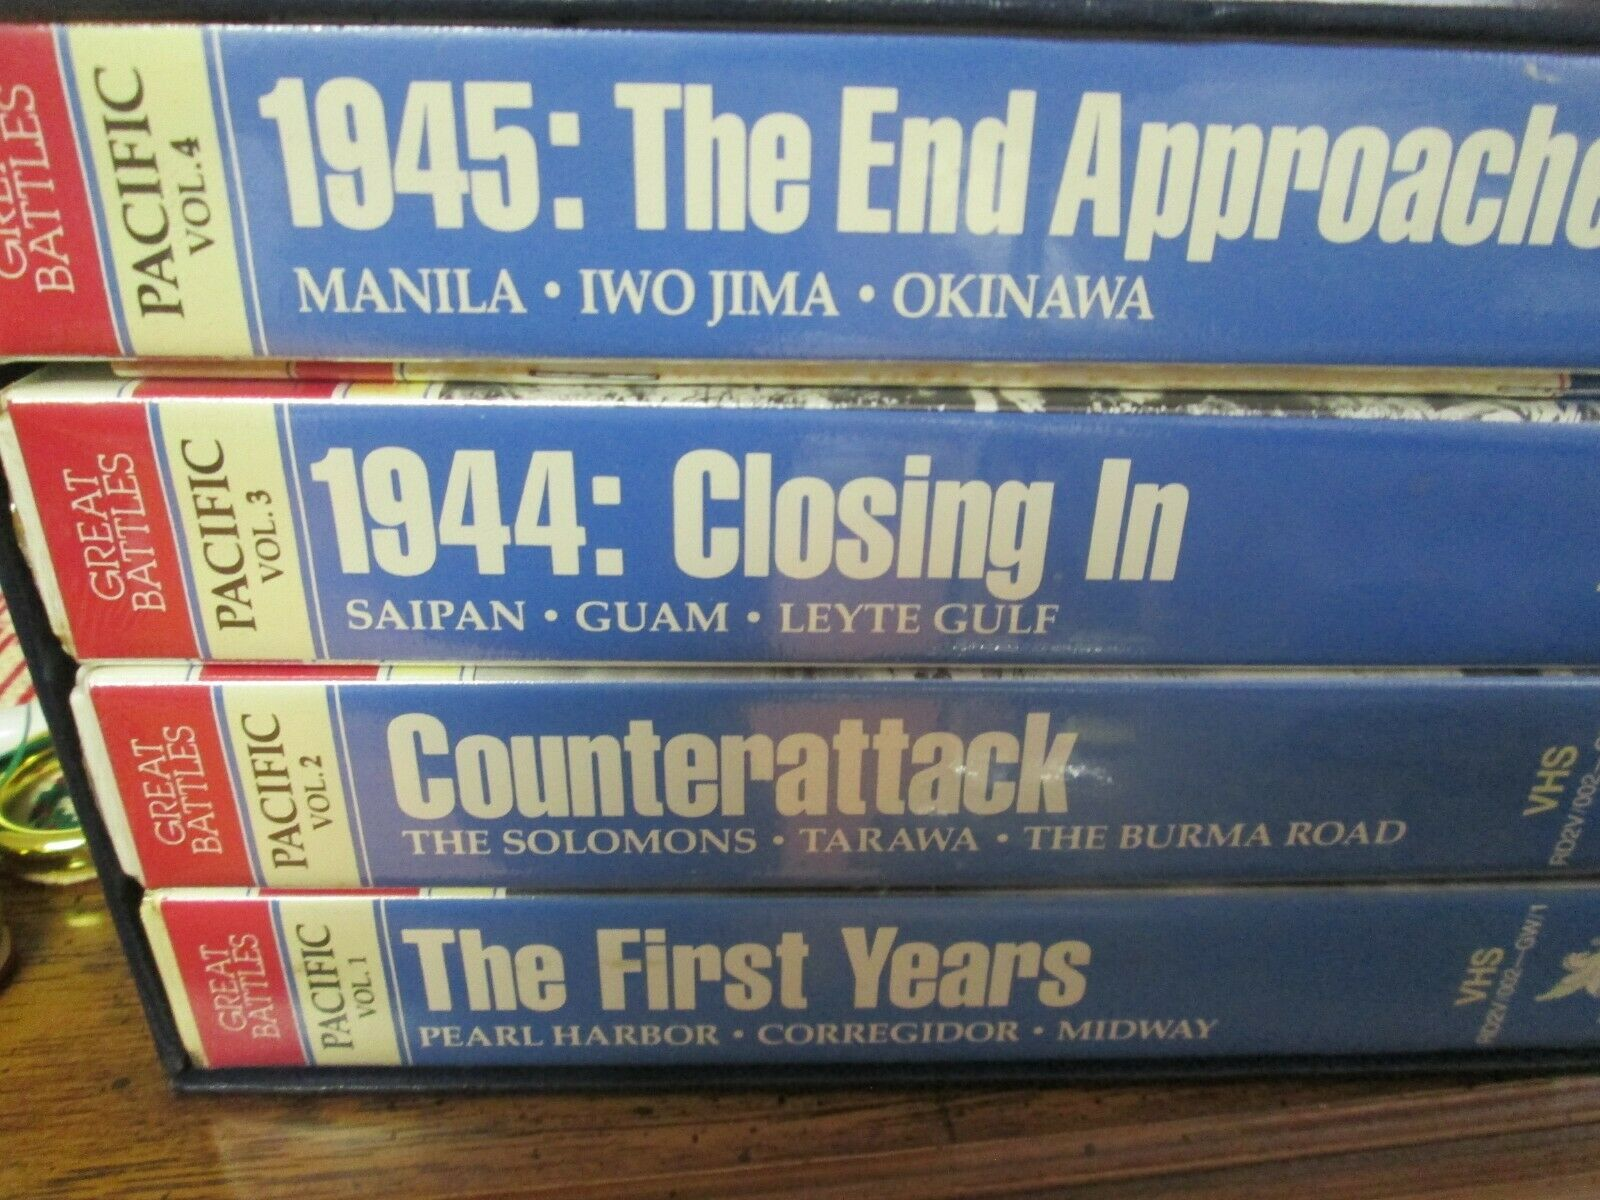 Great Battles Of World War II VHS Box Set 4 Tapes Readers Digest Pacific Victory - $9.99